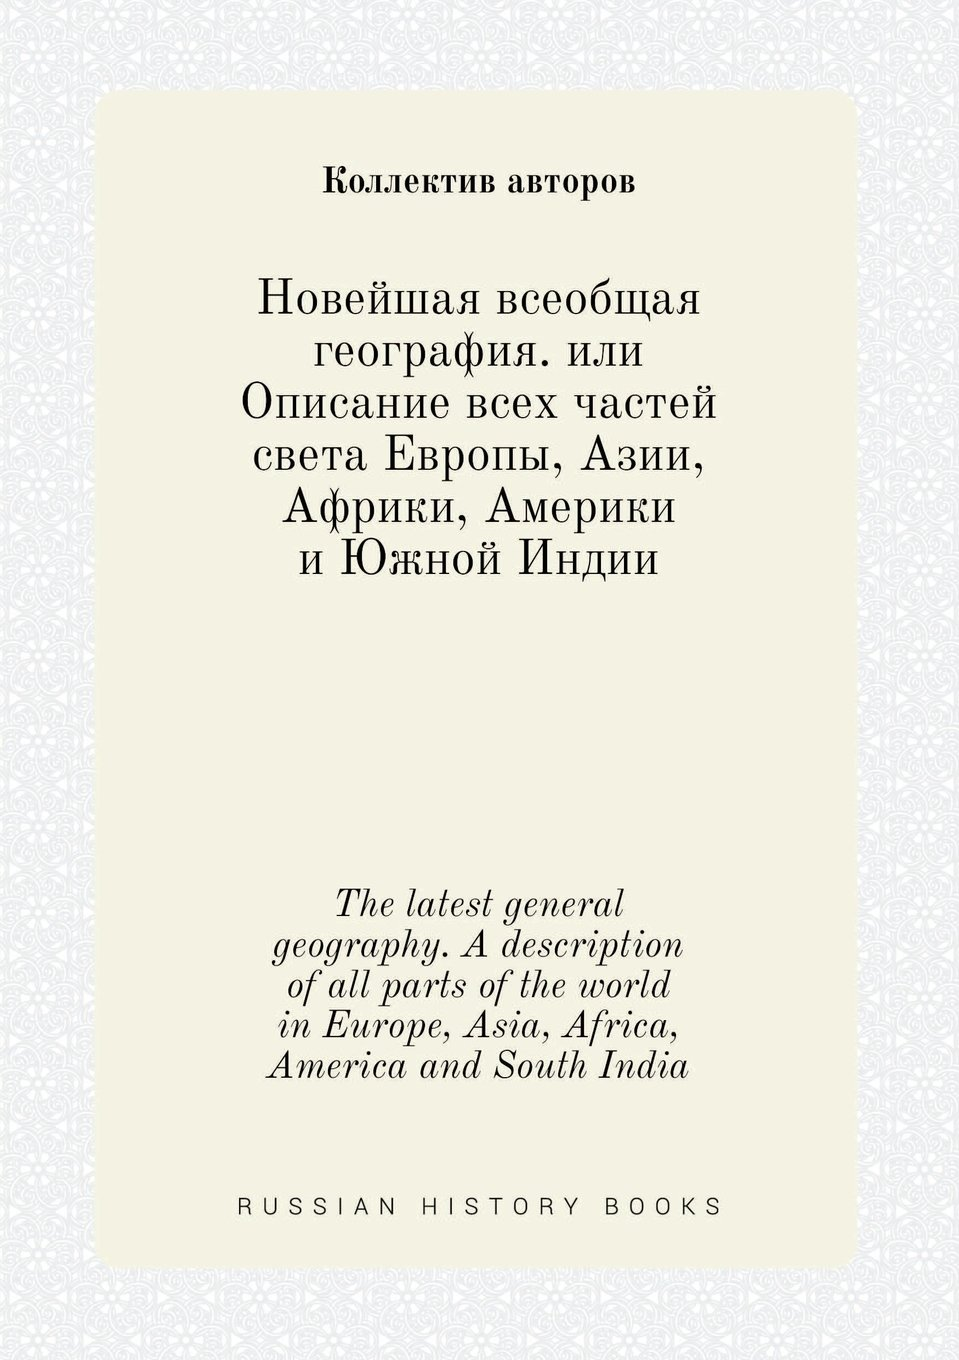 Download The latest general geography. A description of all parts of the world in Europe, Asia, Africa, America and South India (Russian Edition) pdf